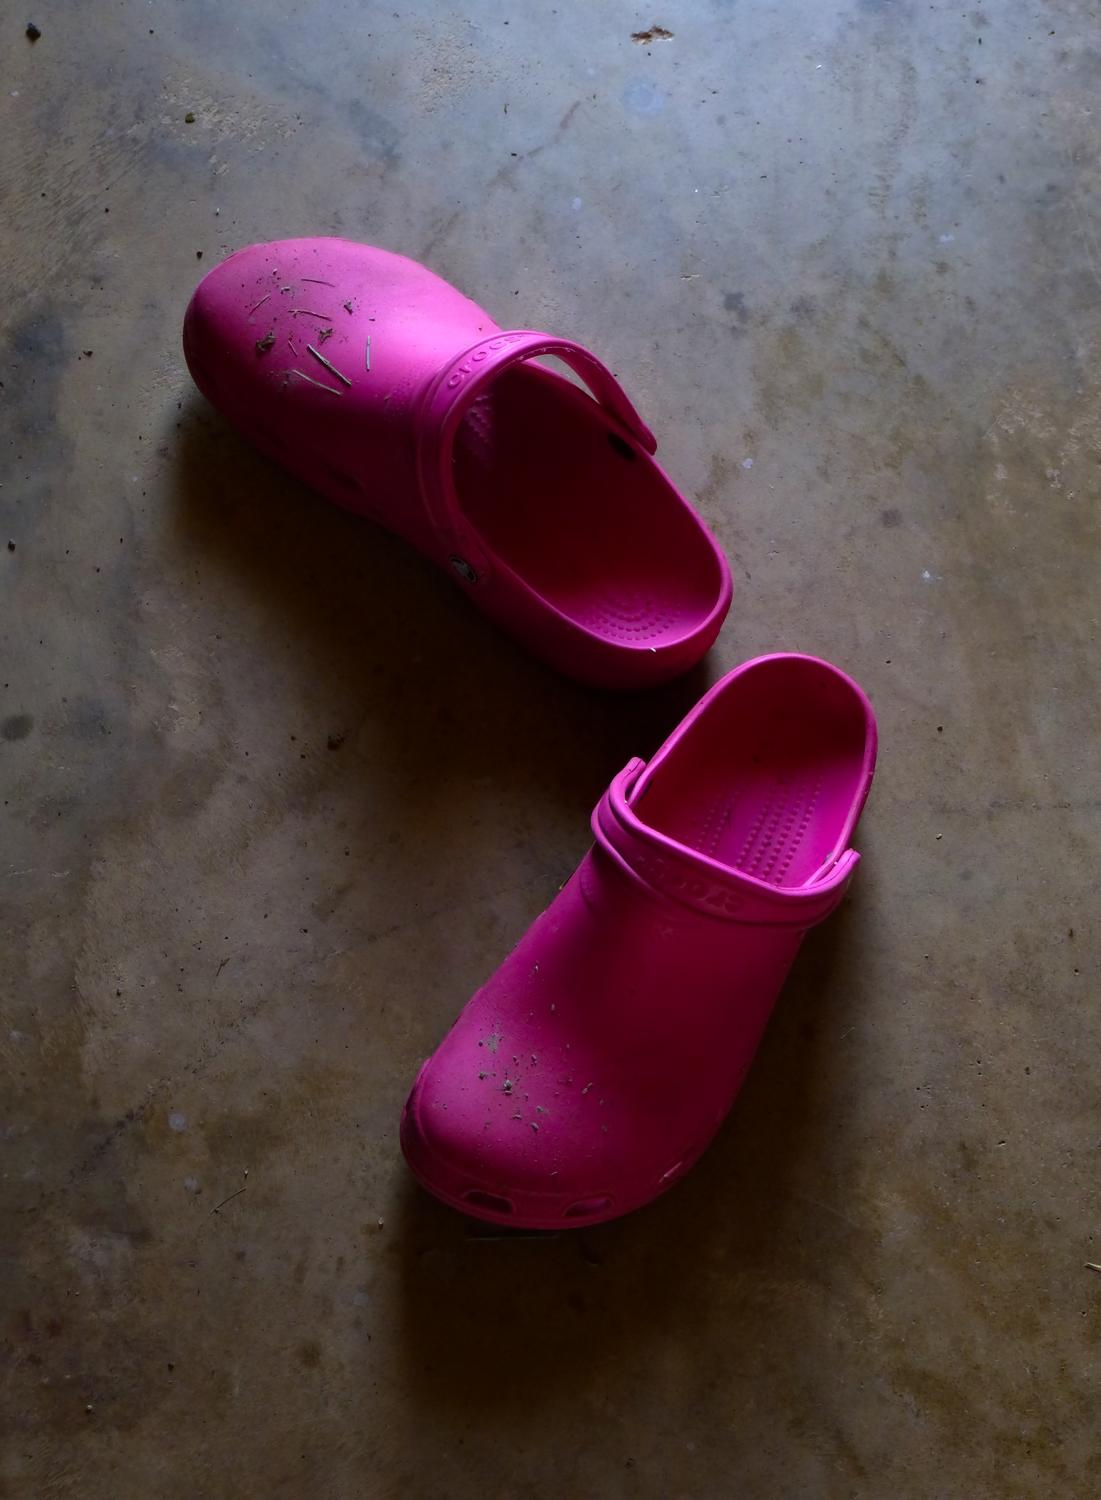 pink crocs - The Hobbitt's Crocs. - Panasonic DMC-FZ35 - Tony Karp, design, art, photography, techno-impressionist, techno-impressionism, aerial photography , drone , drones , dji , mavic pro , video , 3D printing - Books -